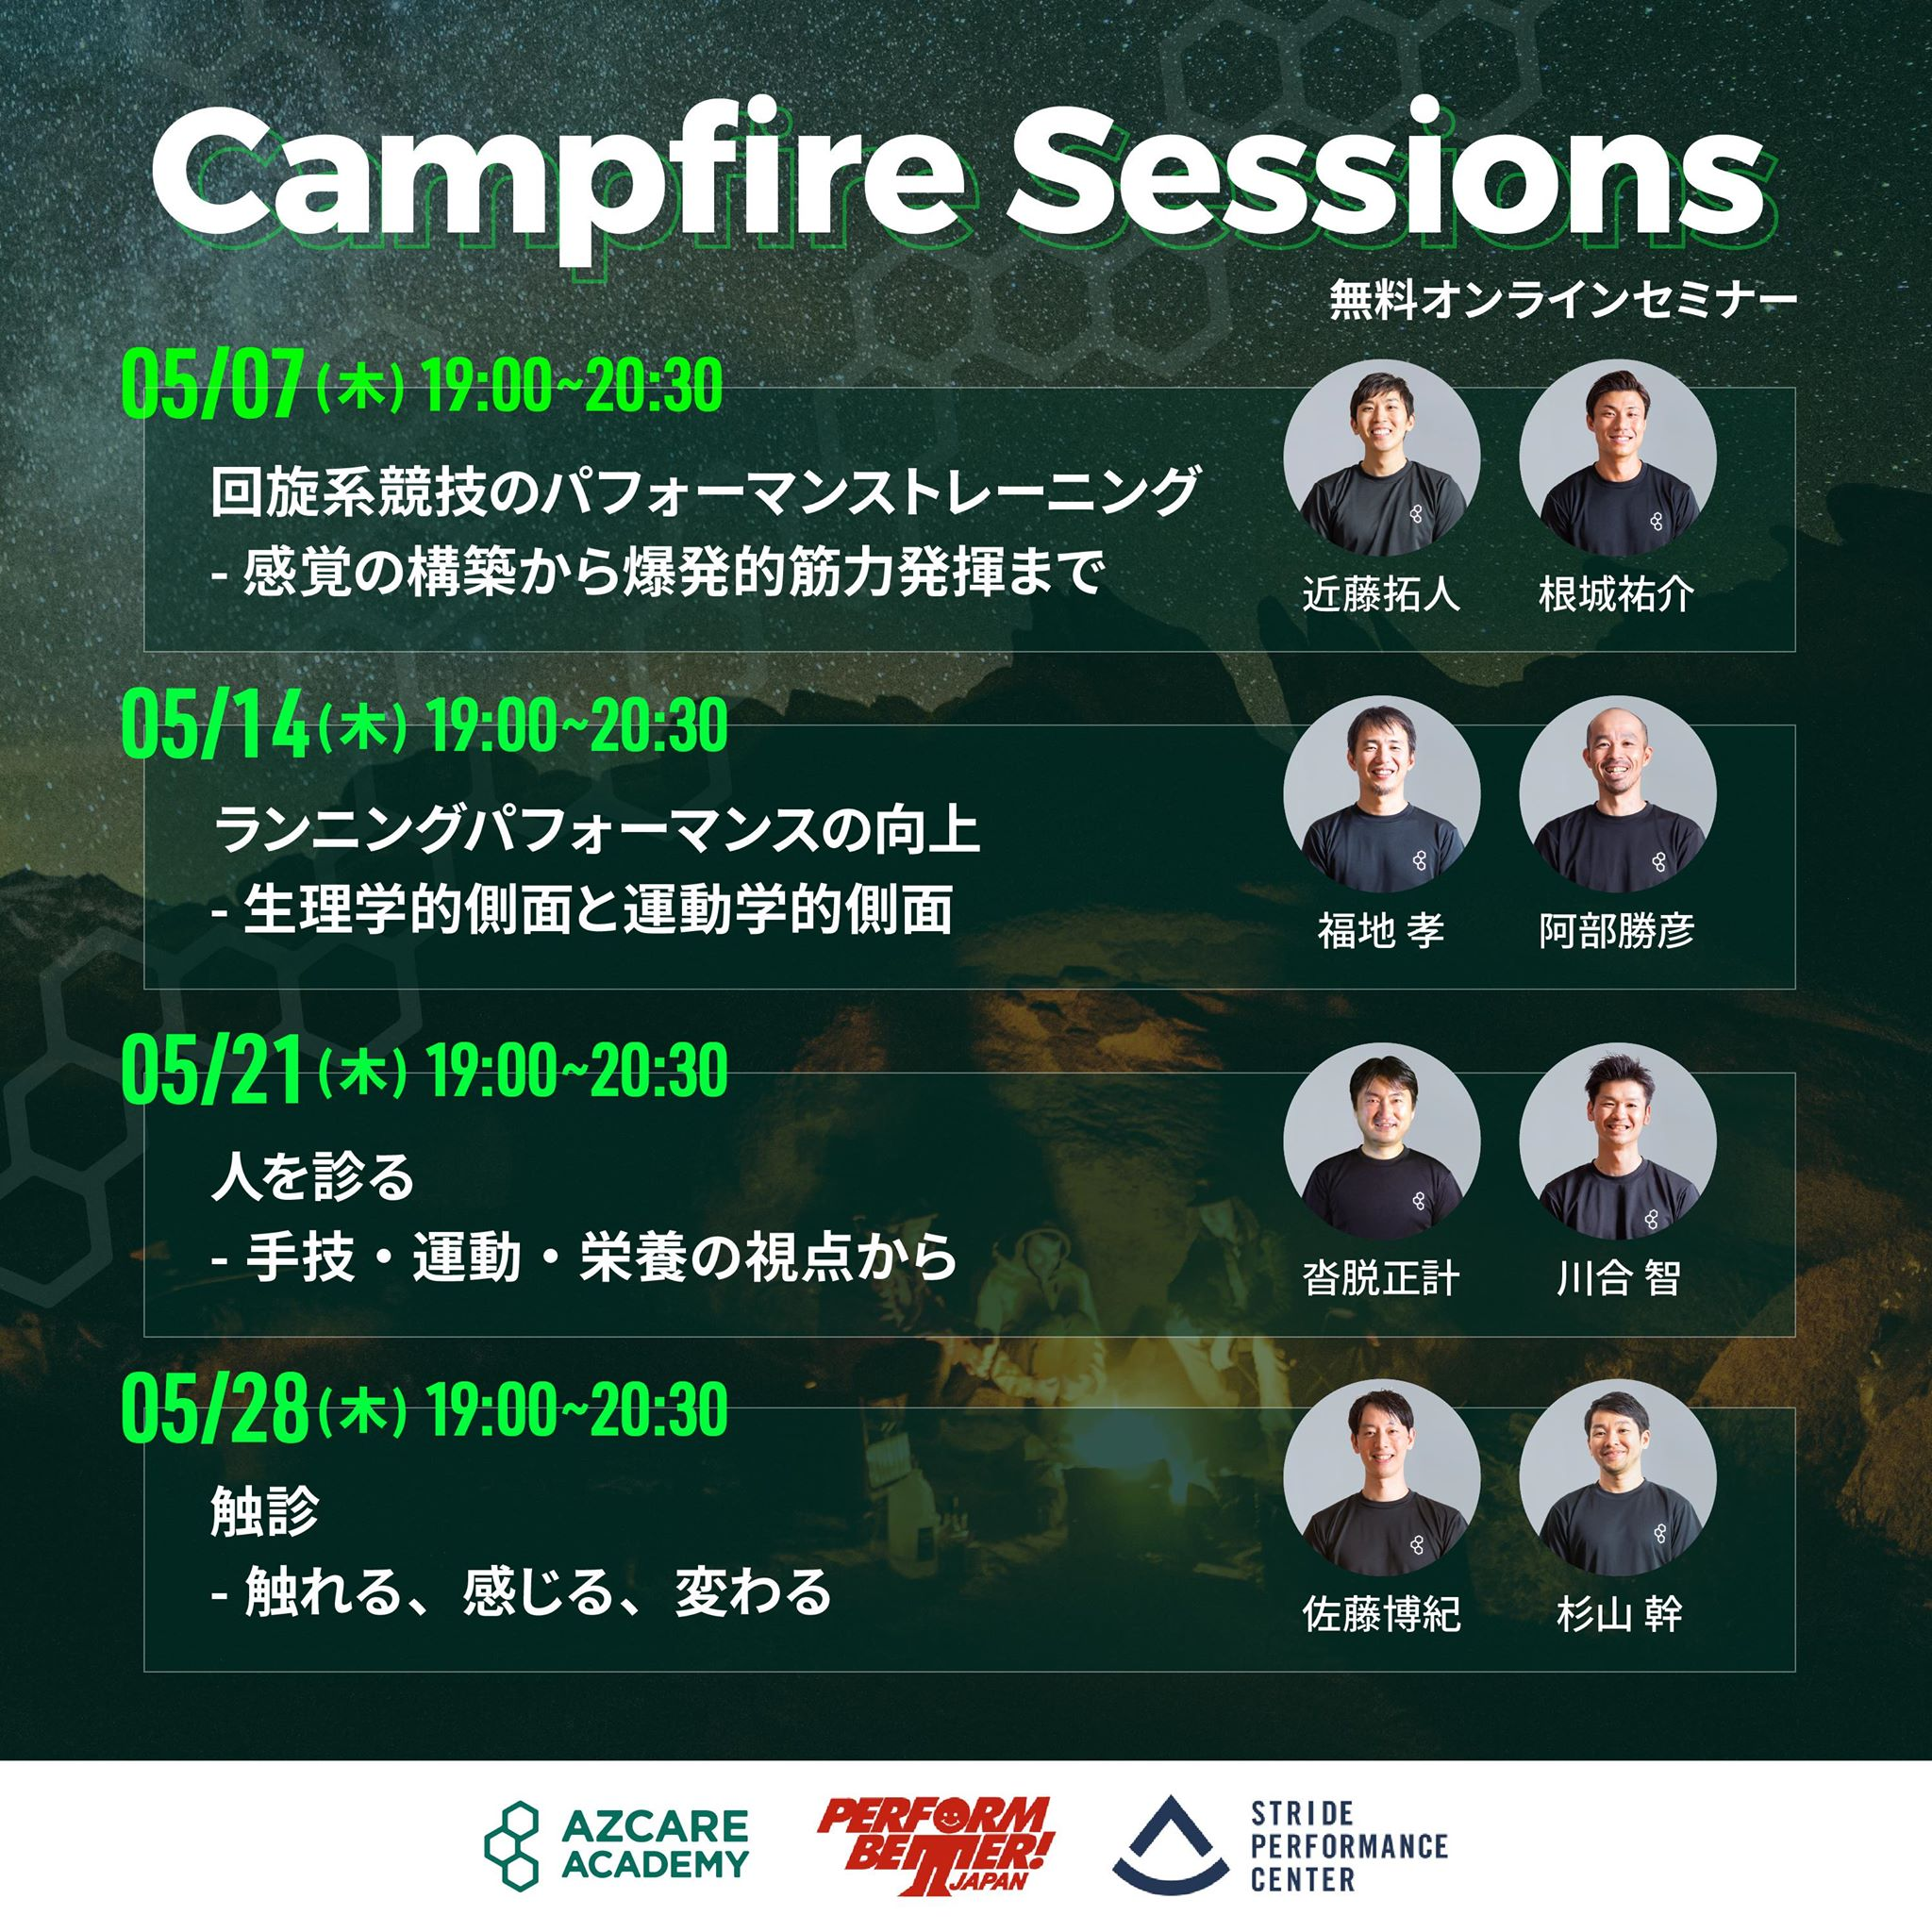 Campfire Sessions Perform Better Japan x AZCARE ACADEMY x Stride Performance Center